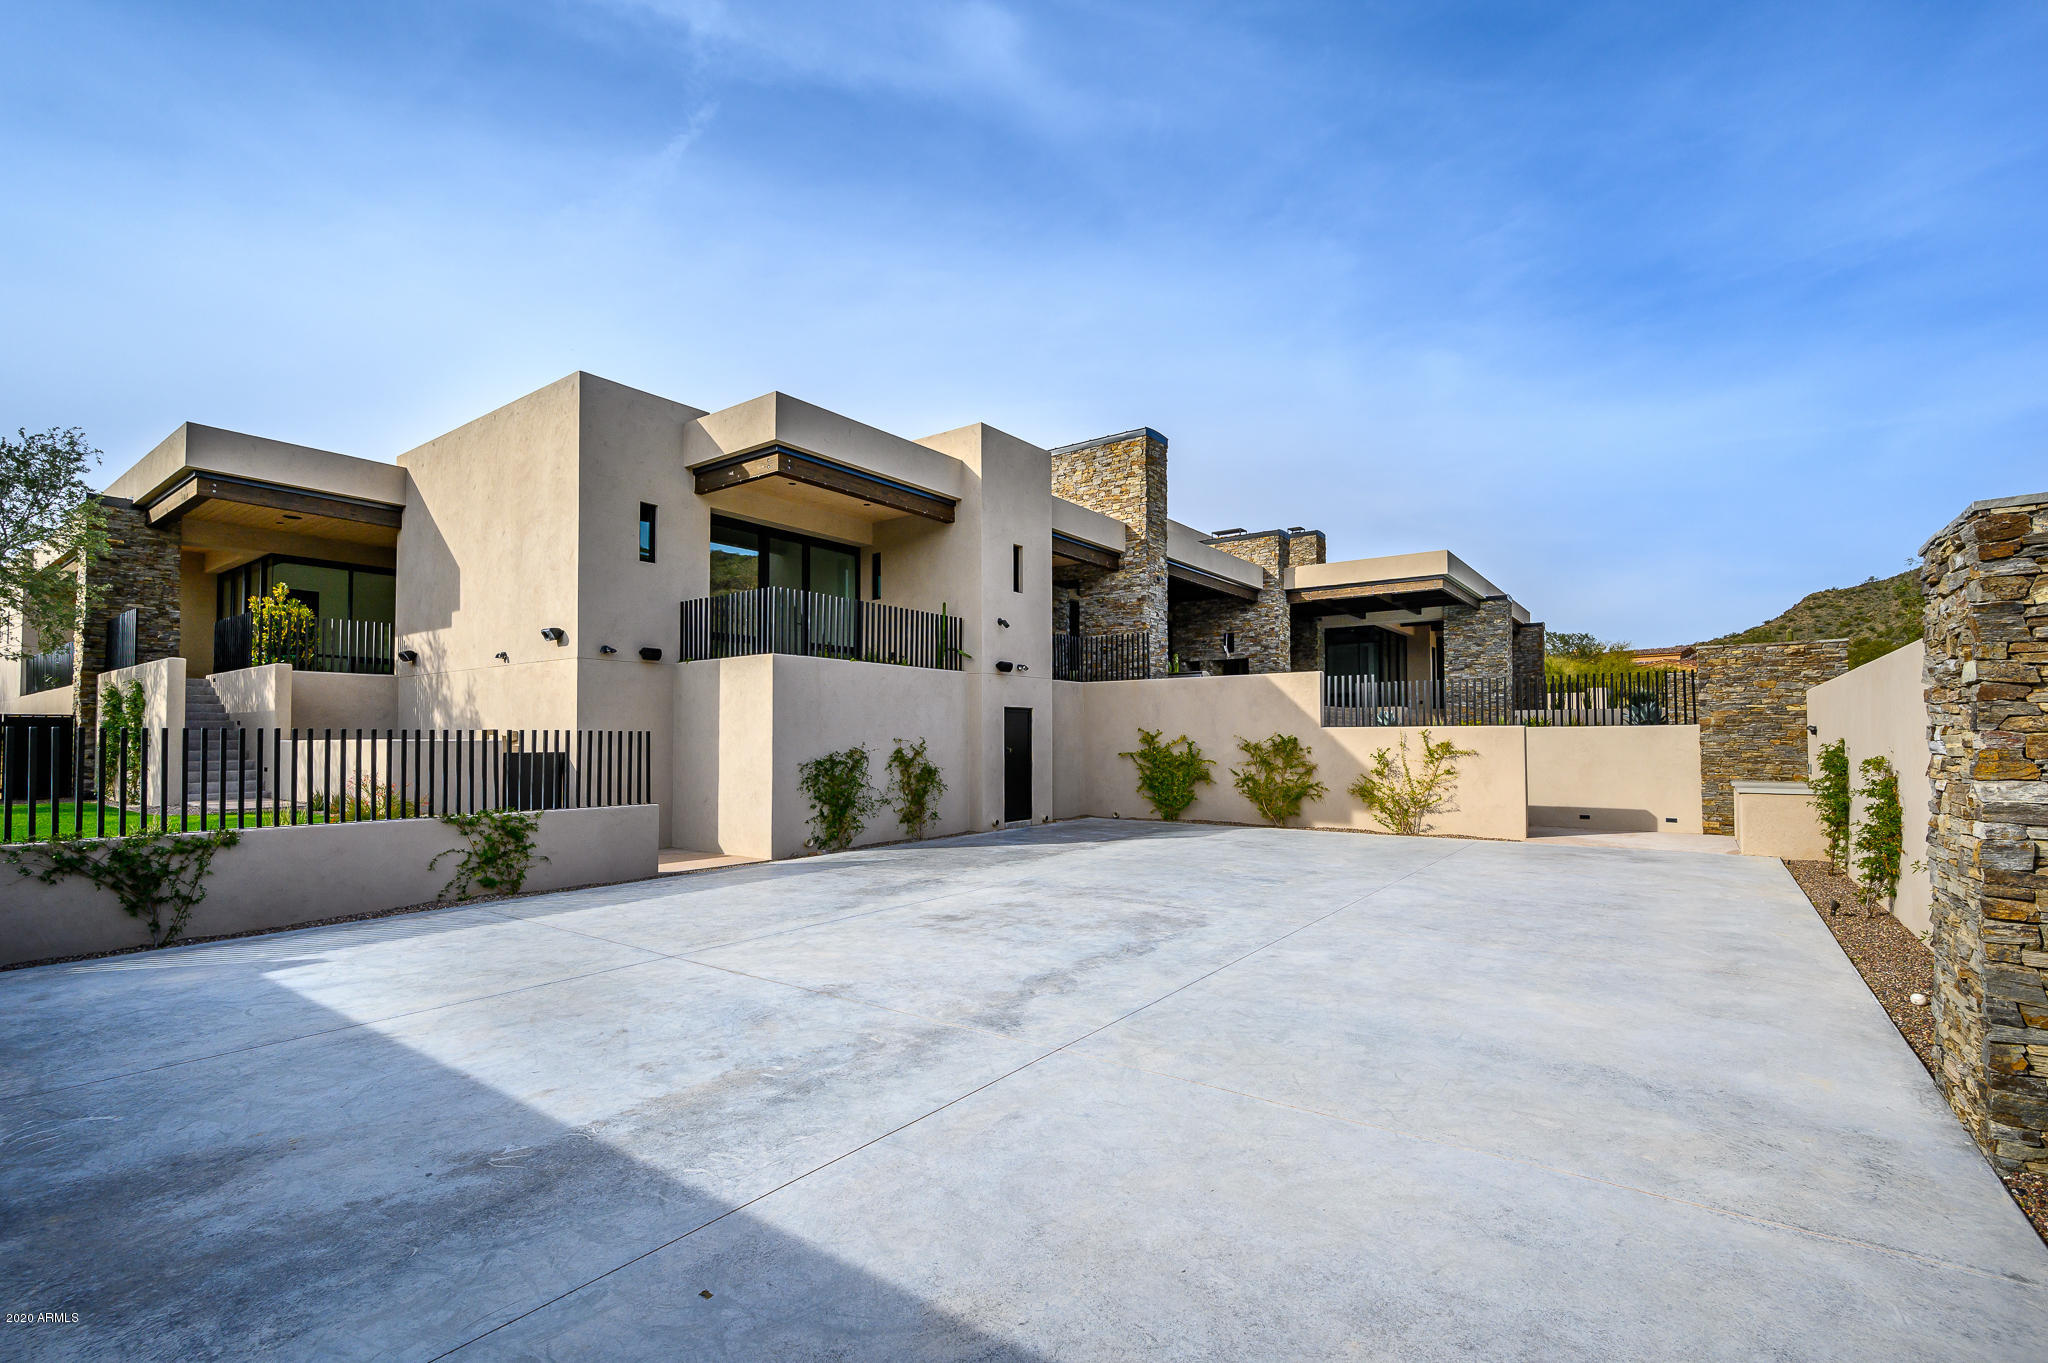 9820 E Thompson Peak Pkwy Scottsdale, AZ